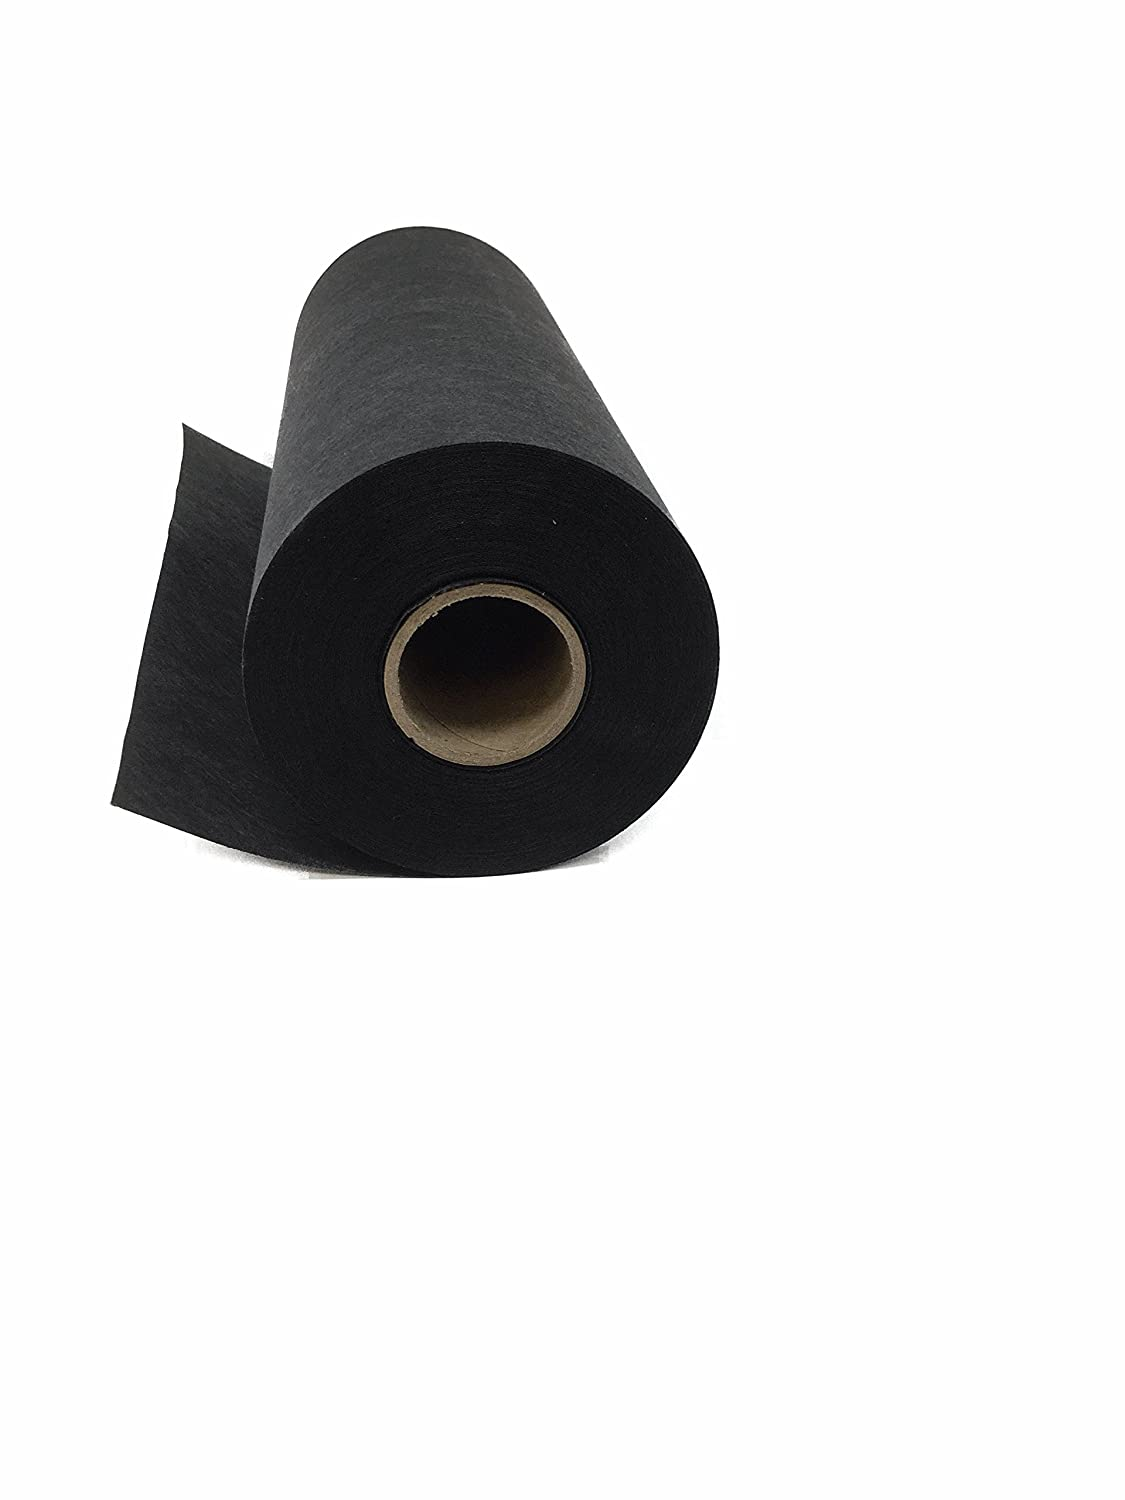 "Cut Away Embroidery Stabilizer (Black) 11"" x 25 Yard Roll – 2.5 Ounce Black Cutaway for Machine Embroidery H.B.I."